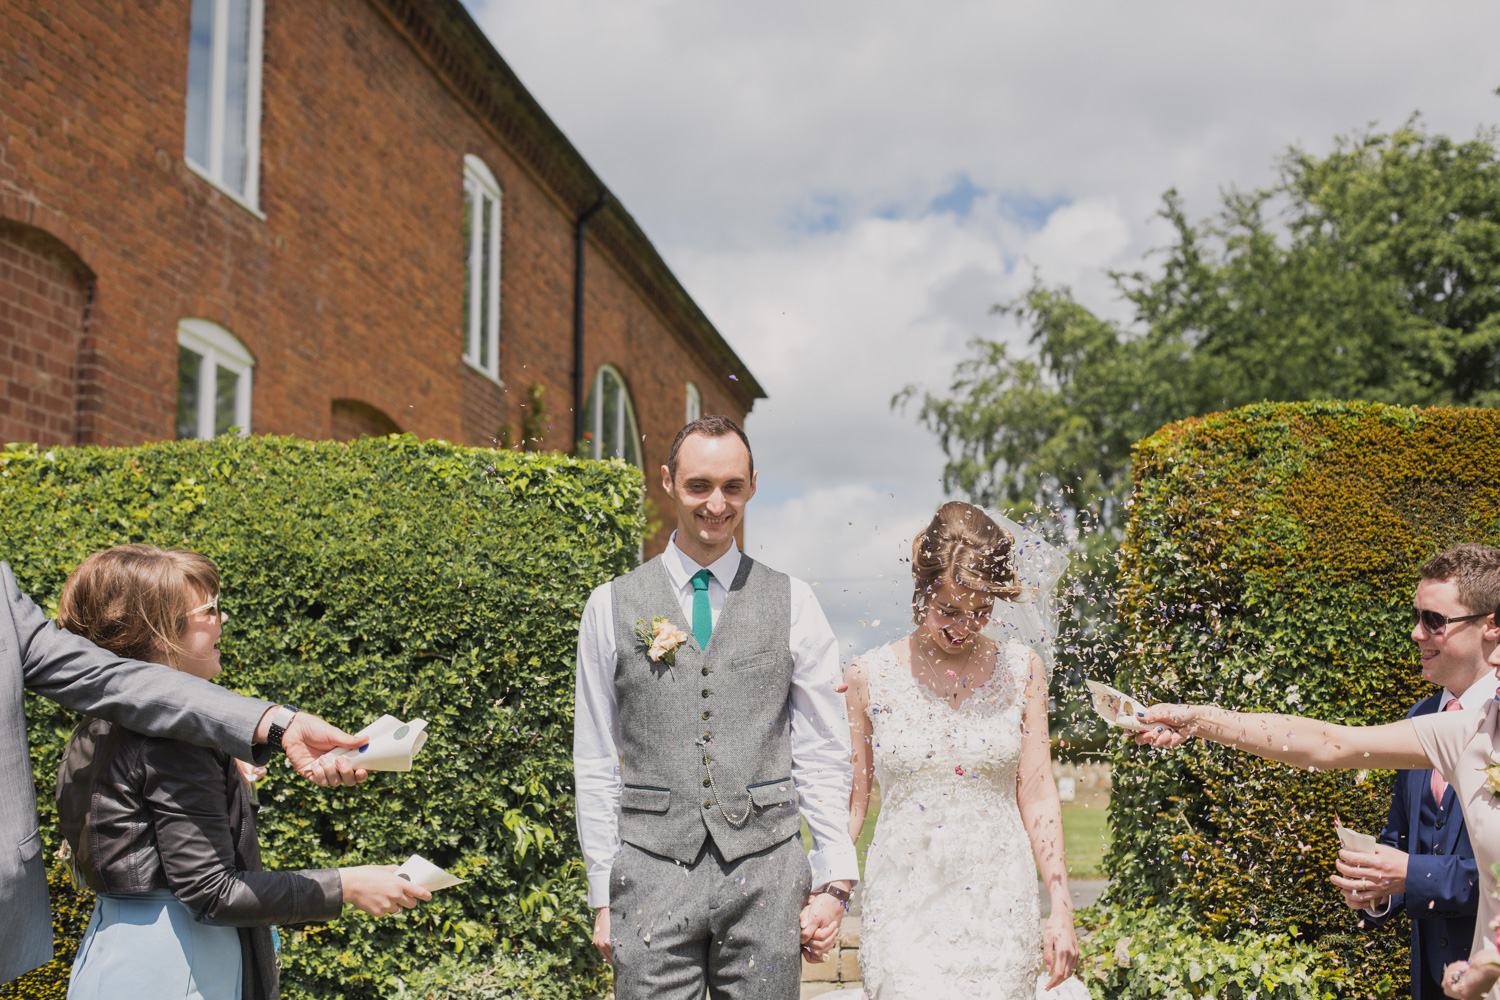 Delbury-Hall-Wedding-Photography-Shropshire-63.jpg